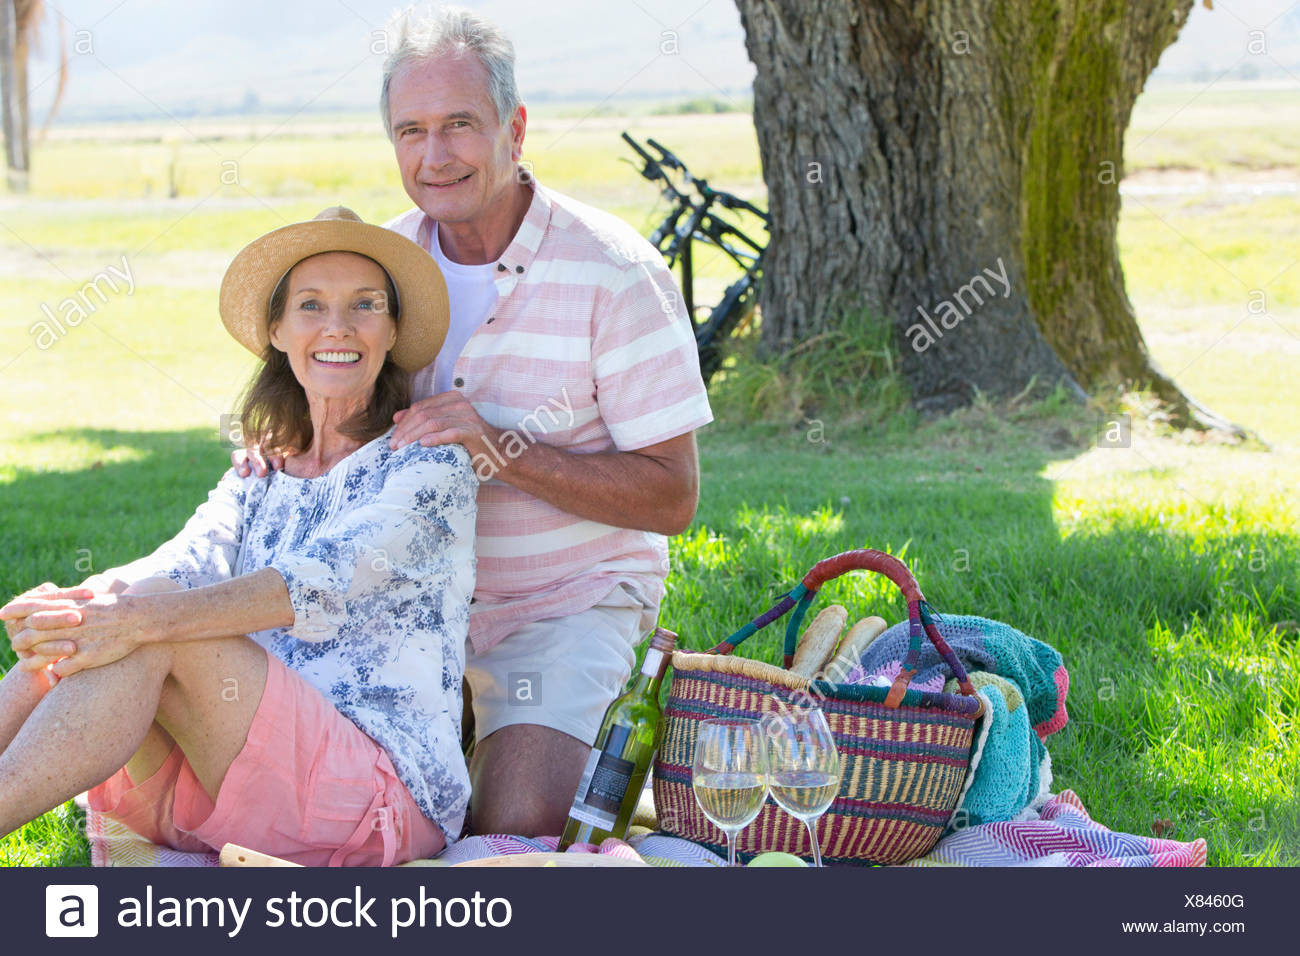 Senior couple sitting on picnic blanket - Stock Image